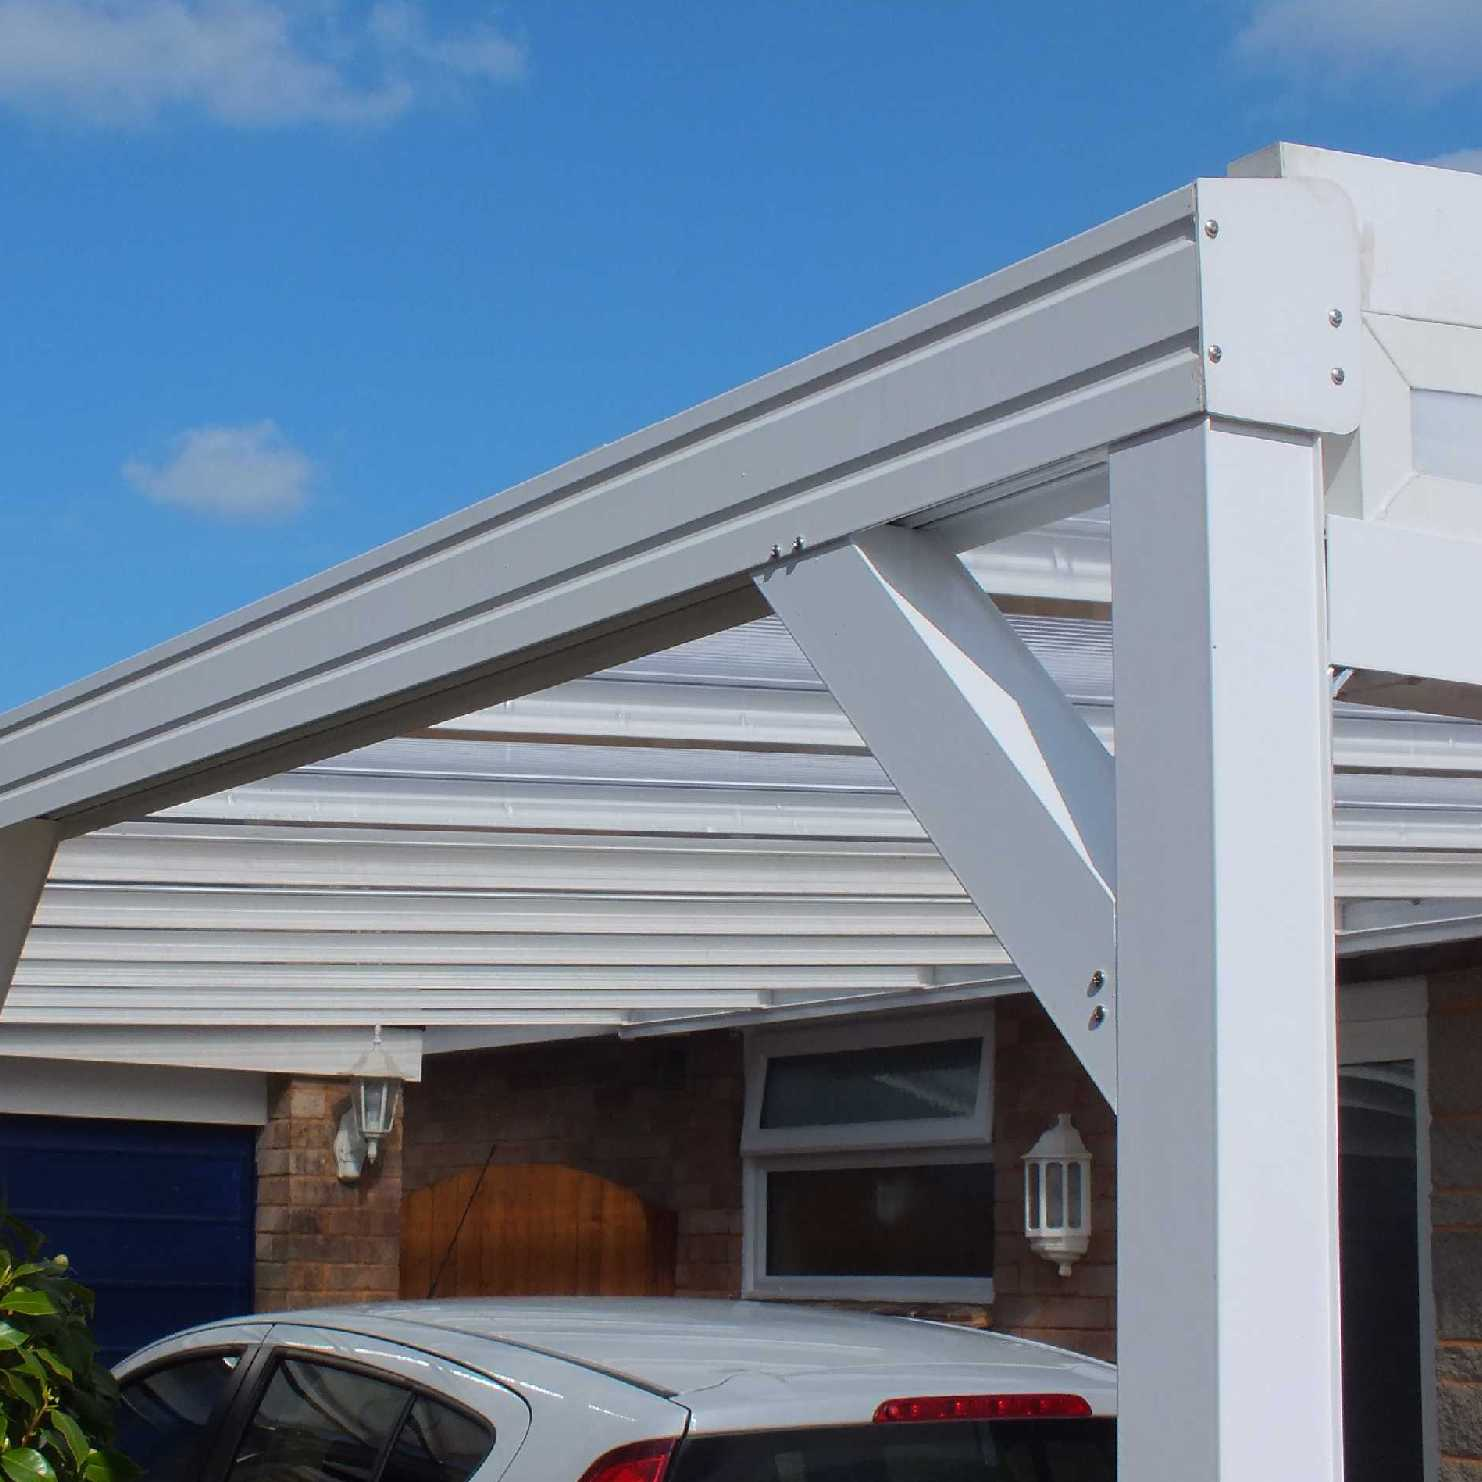 Great deals on Omega Smart Lean-To Canopy with 16mm Polycarbonate Glazing - 10.2m (W) x 4.5m (P), (5) Supporting Posts